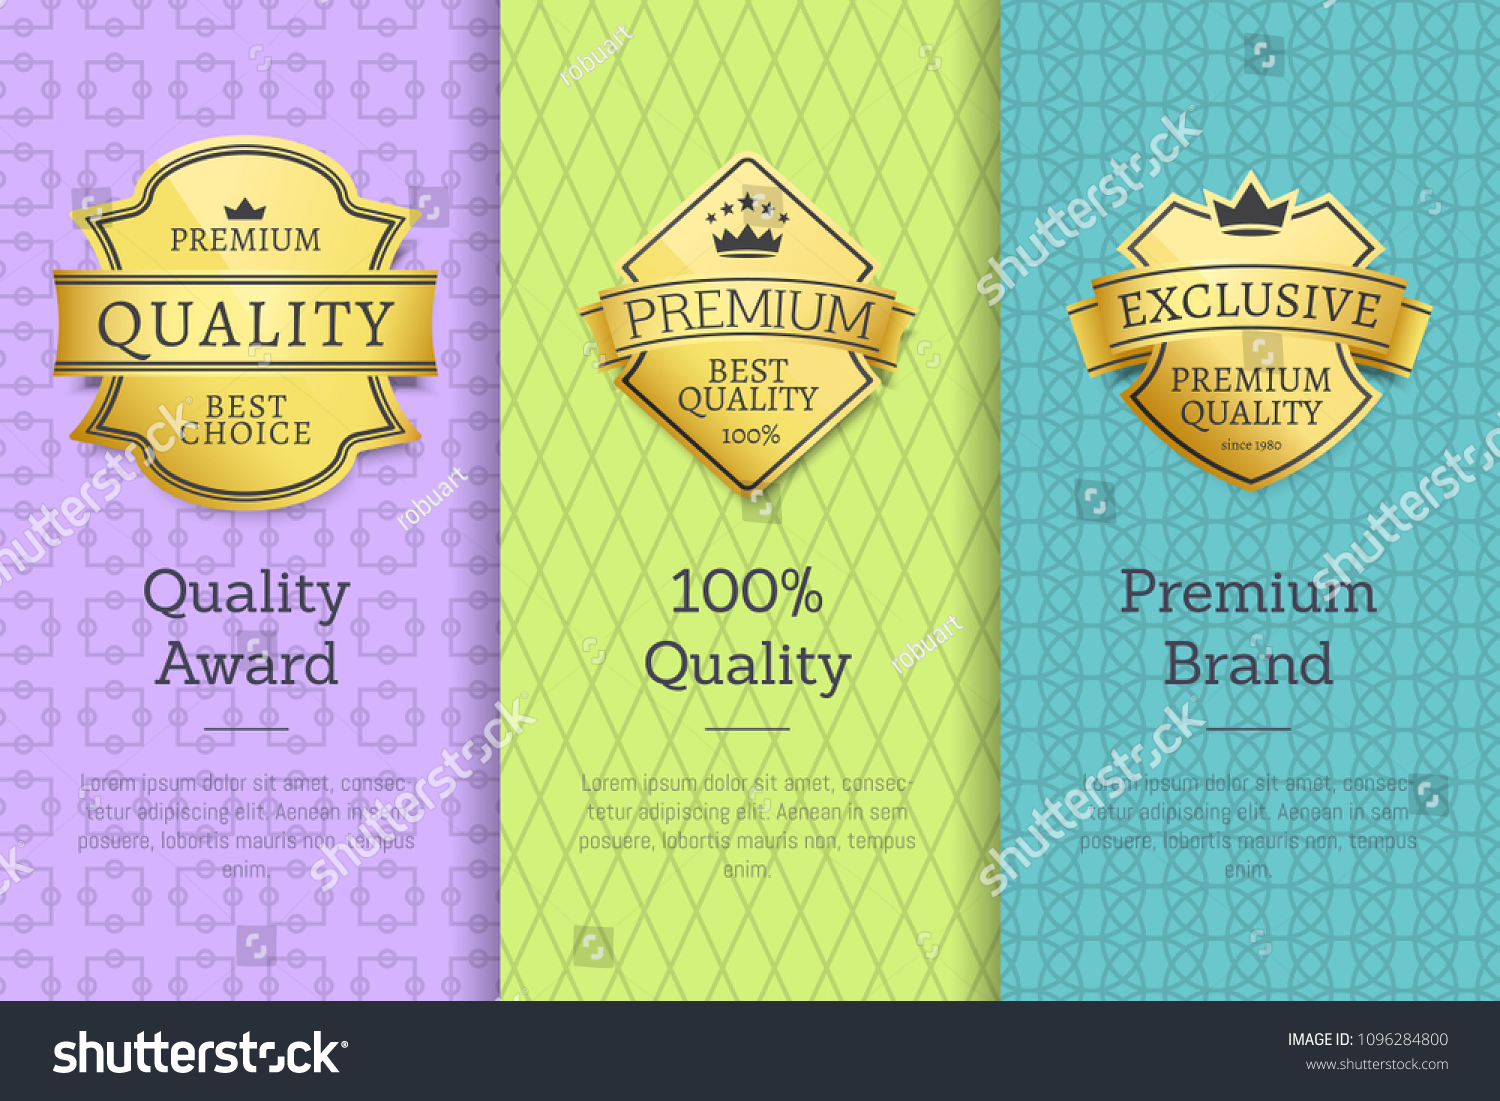 Quality award premium brand 100 seals set of golden labels with text samples warranty